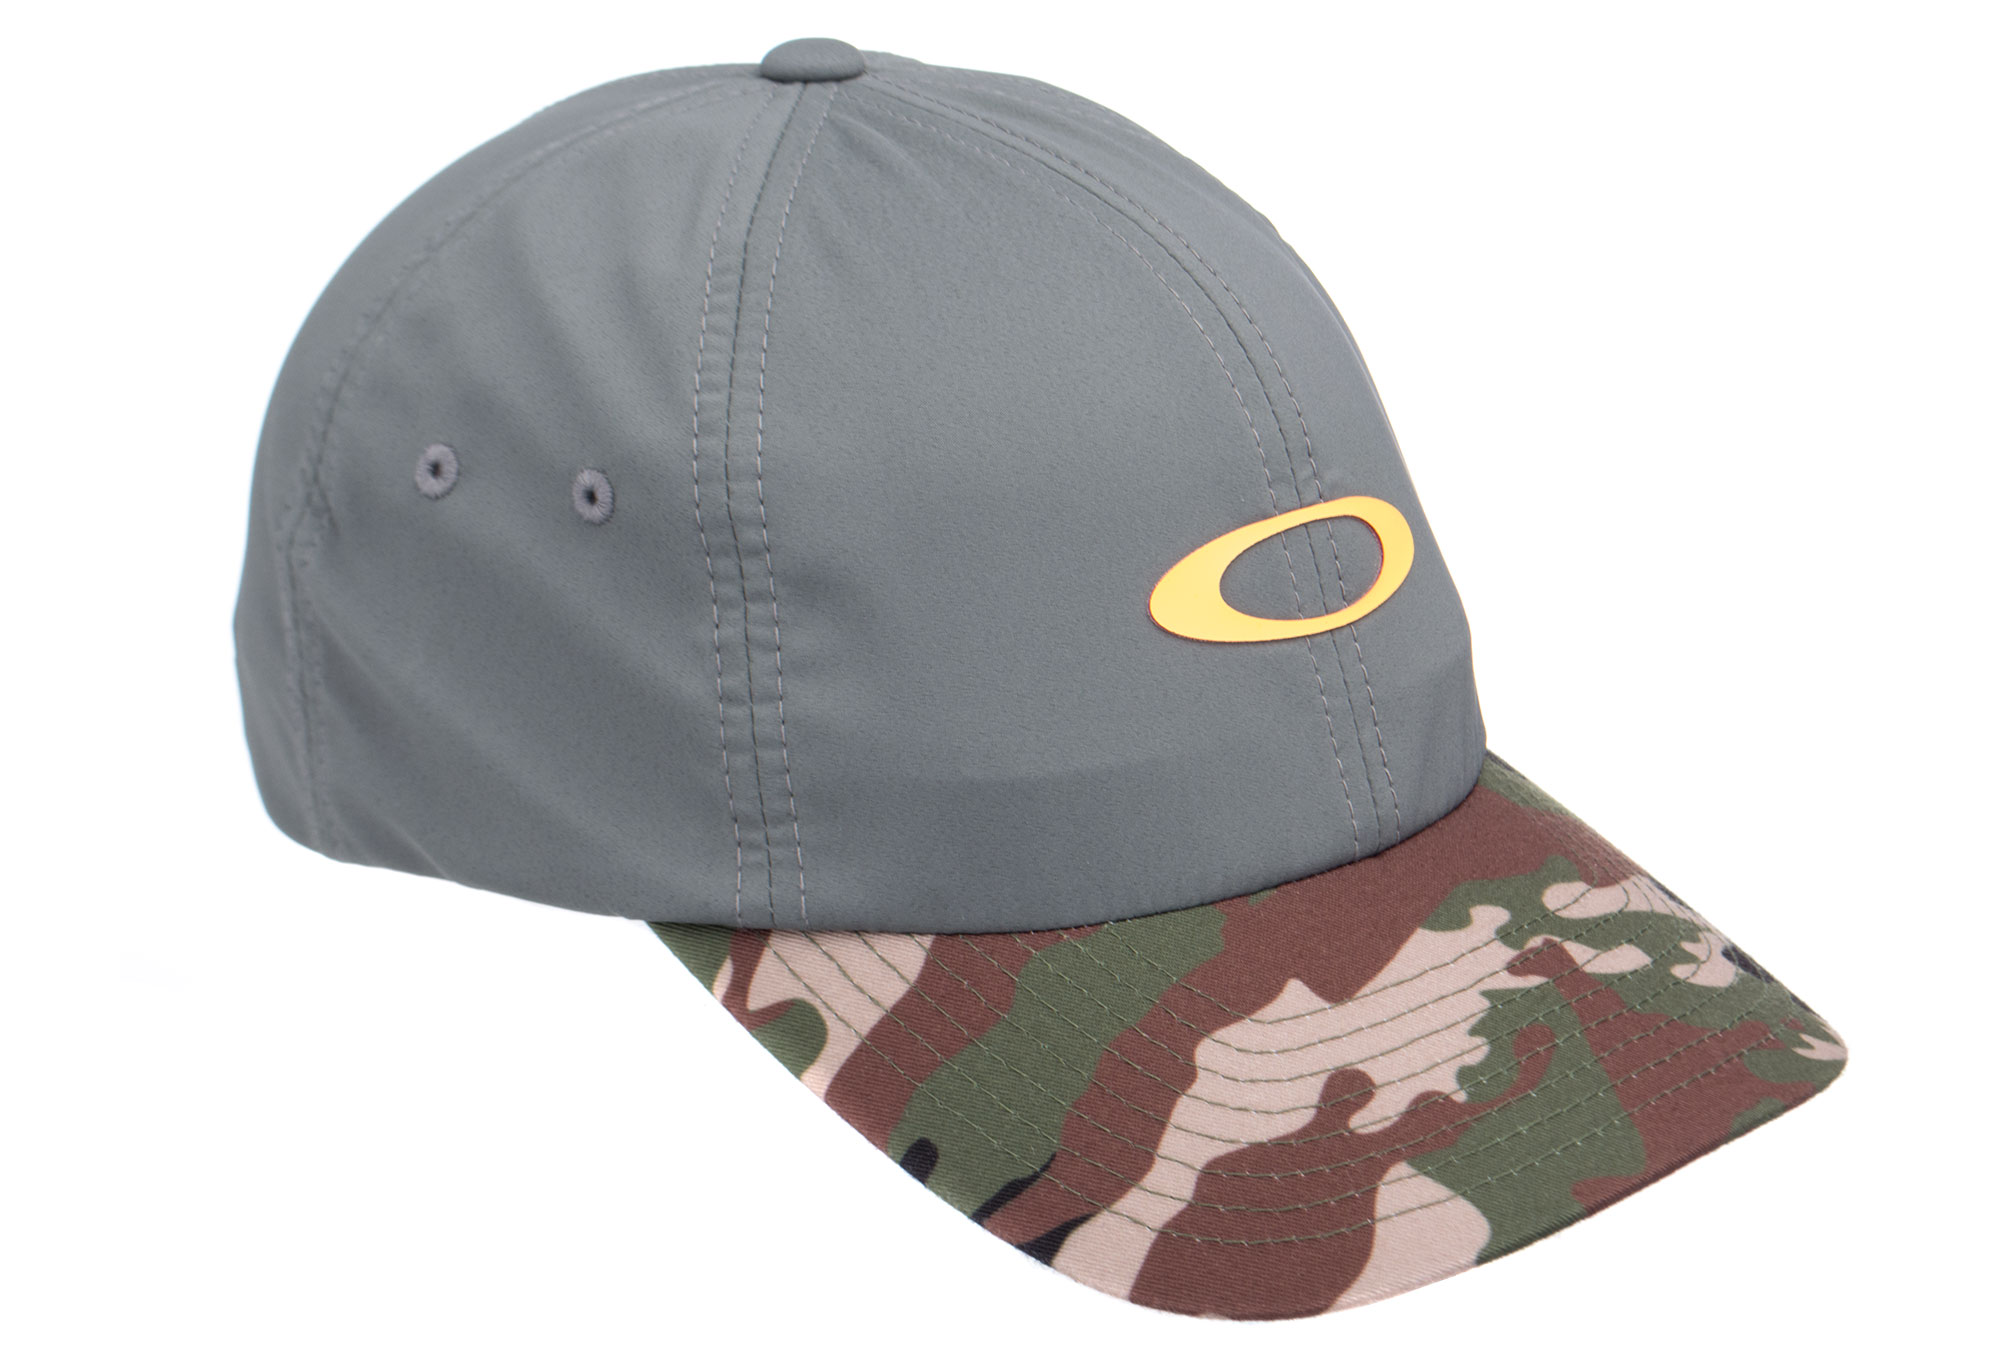 Oakley Cap 6 Panel Military Hat Forged Iron   Camo  b5fbd18bda77